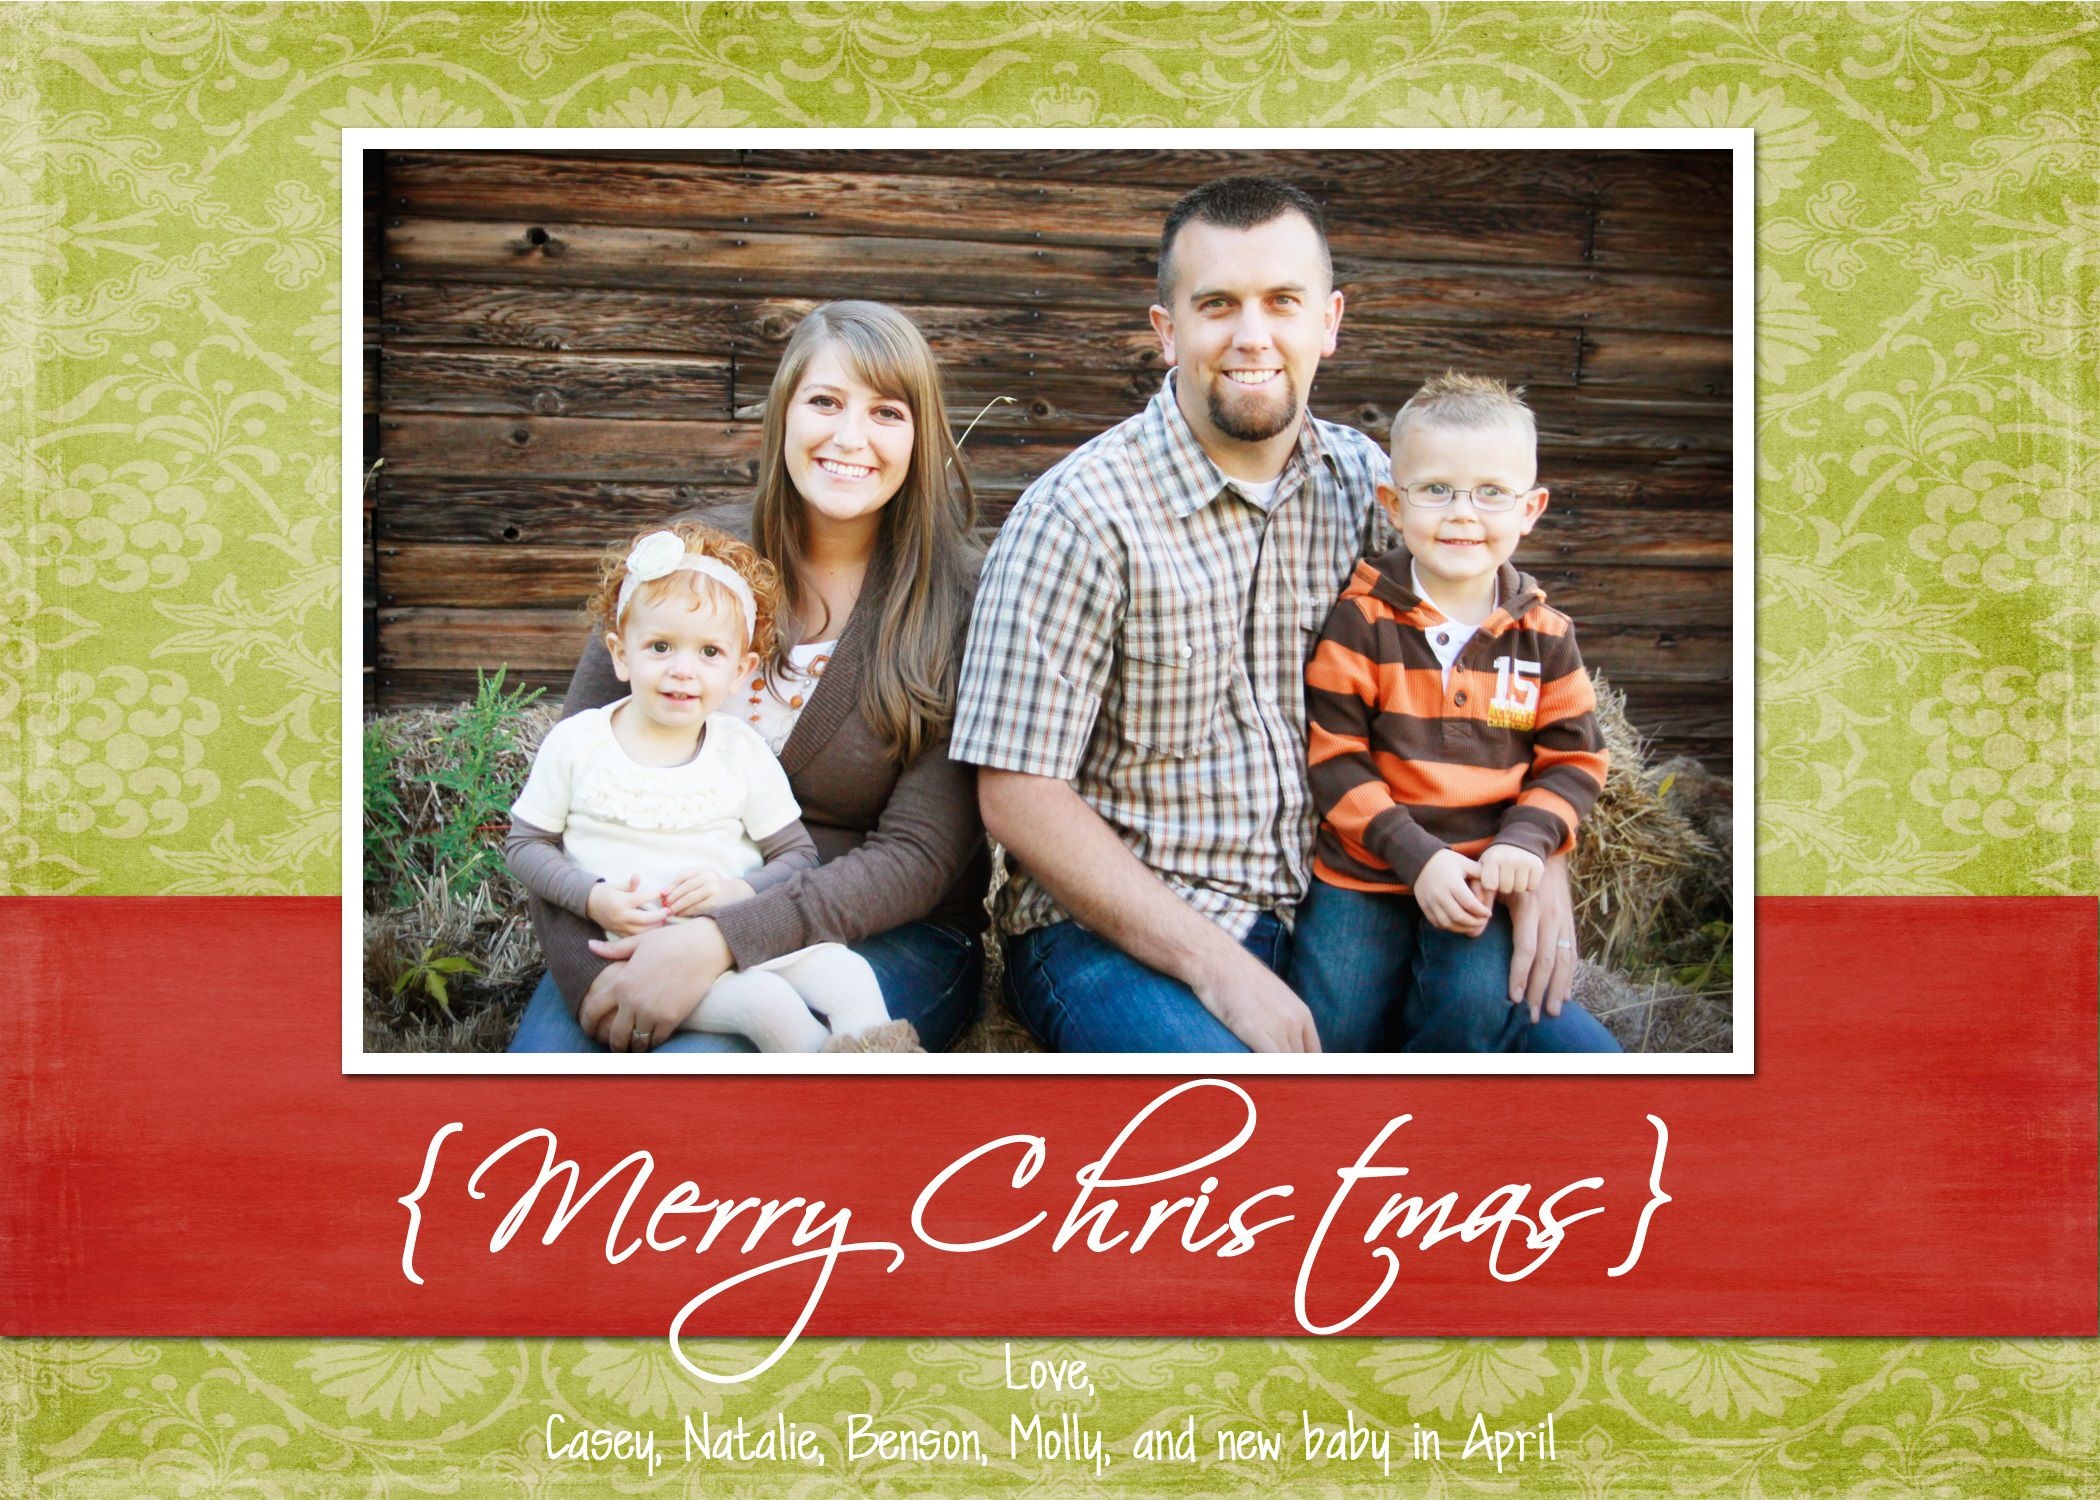 005 Excellent Christma Card Template Photoshop Idea  Free Download FunnyFull